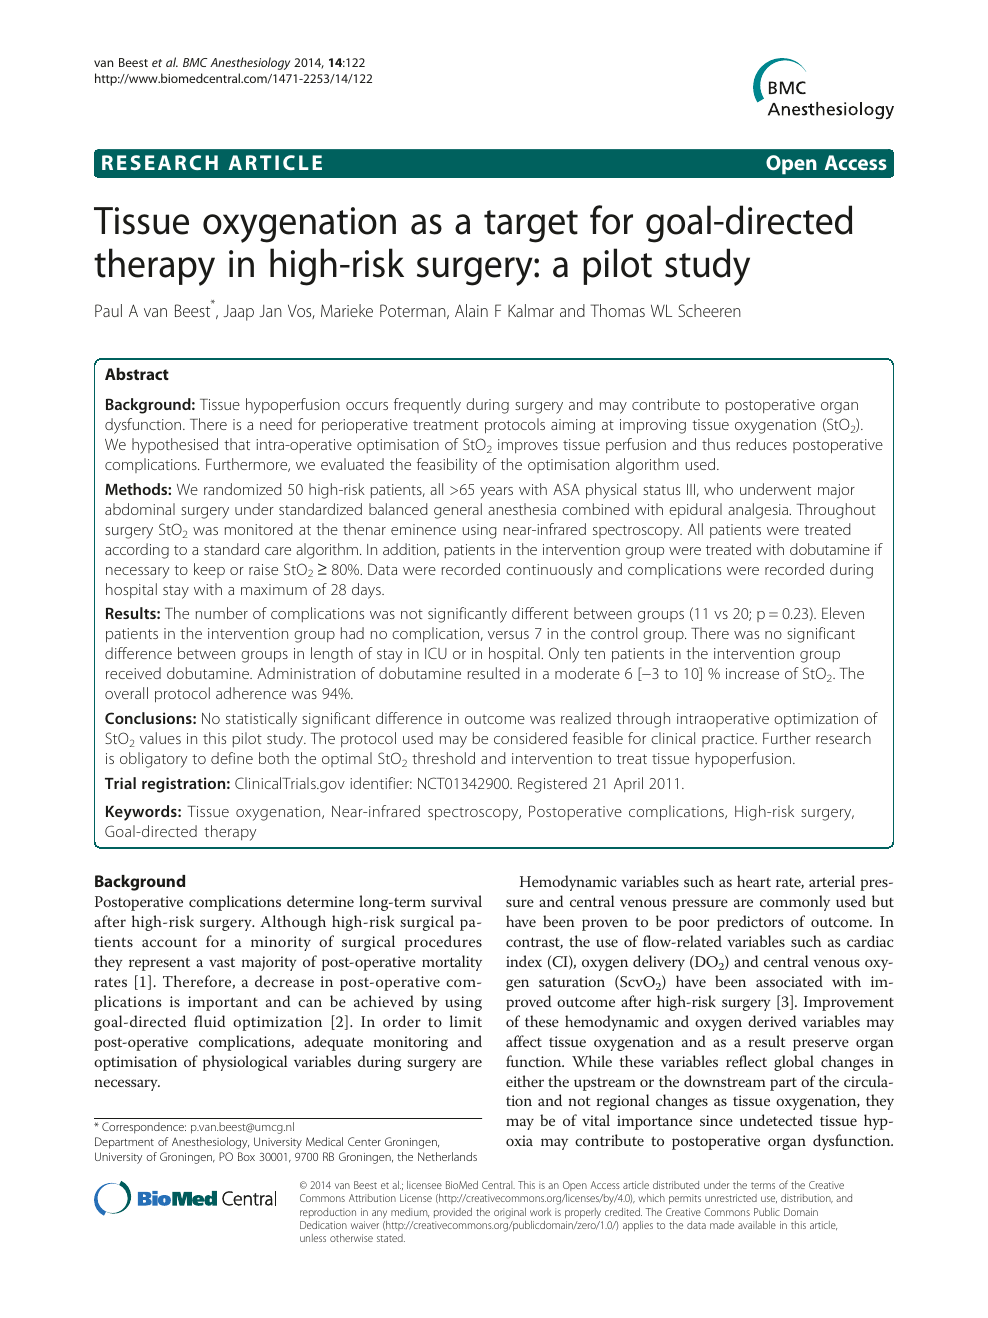 Tissue oxygenation as a target for goal-directed therapy in high